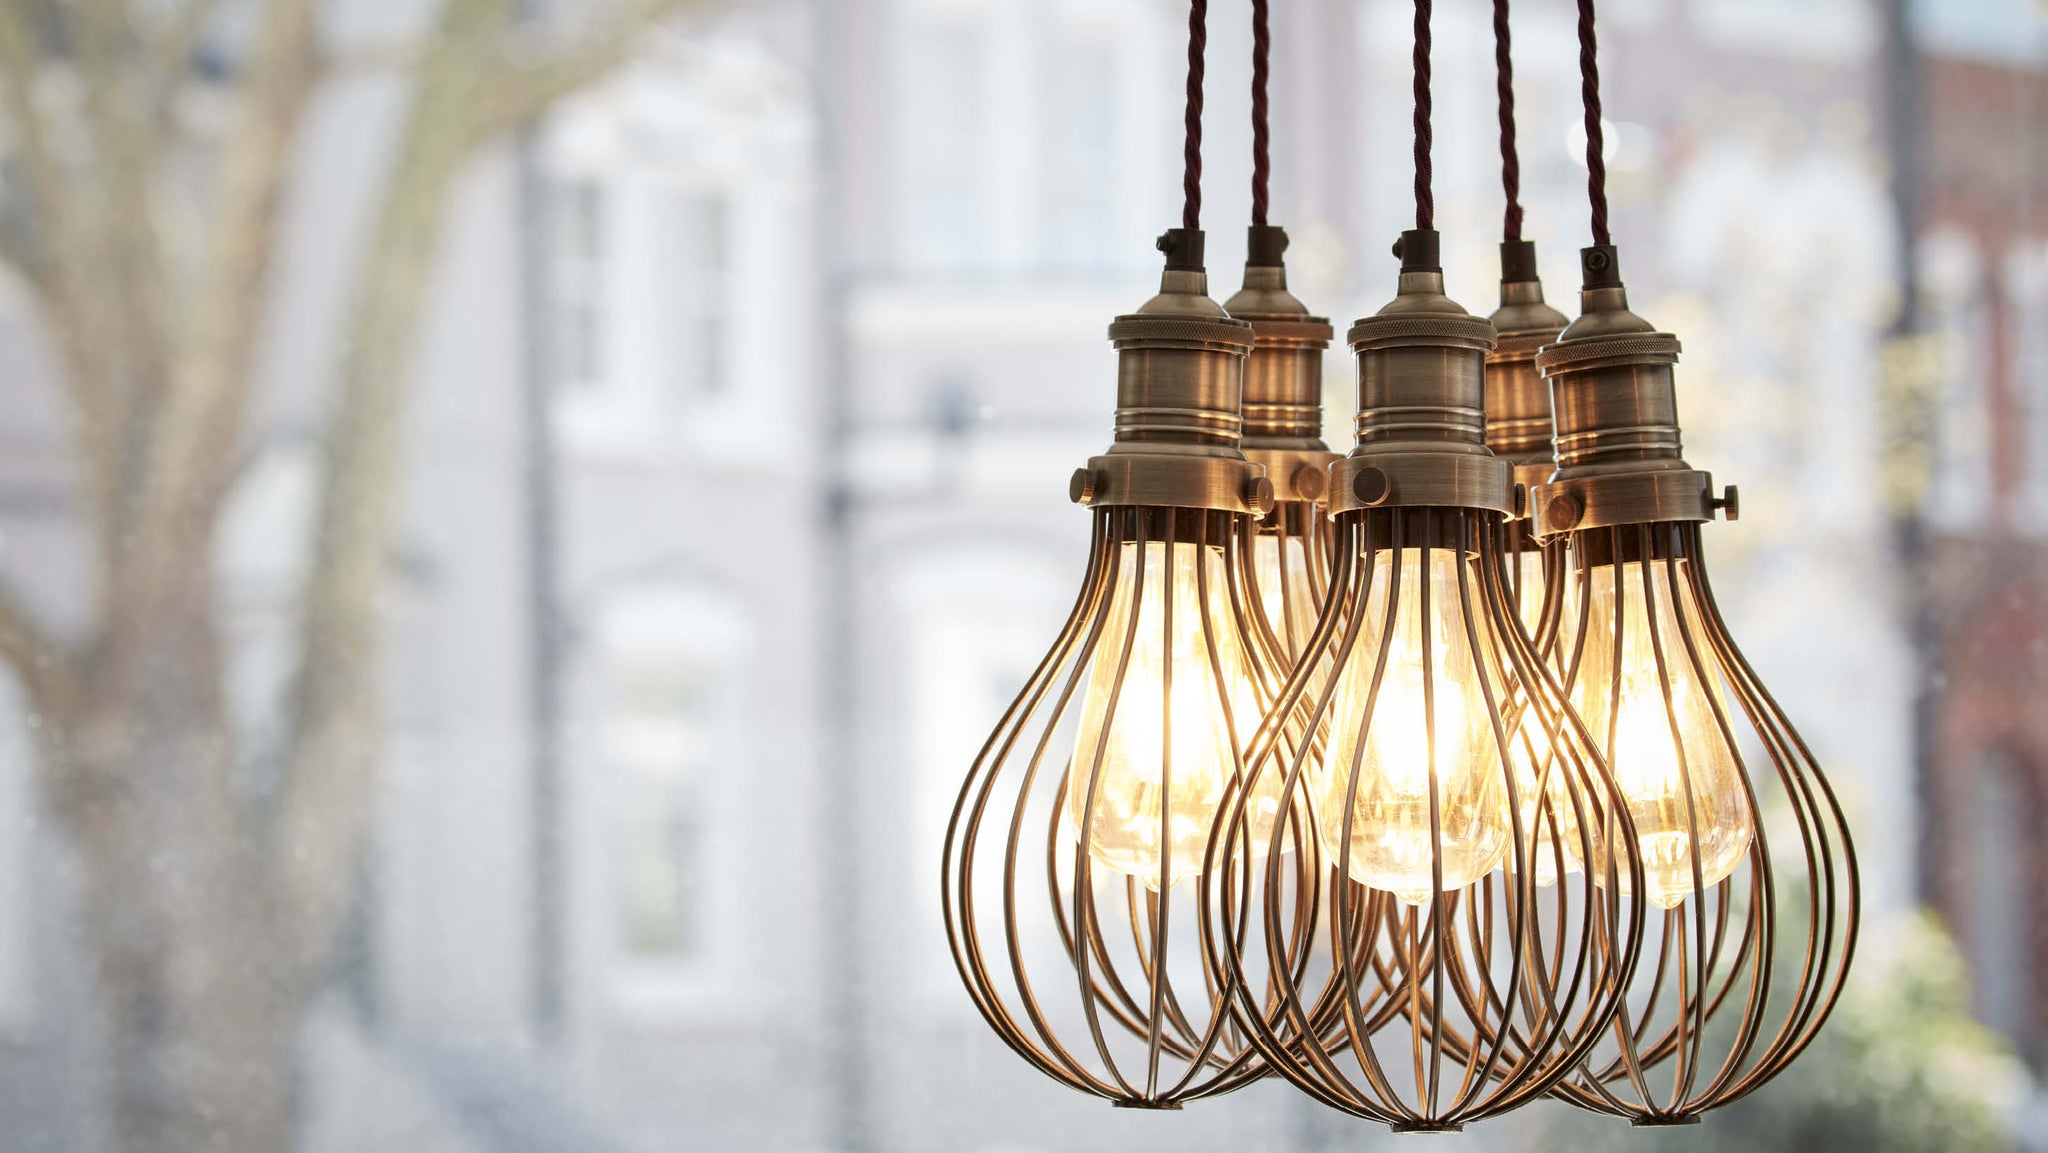 Vintage wire industrial lights